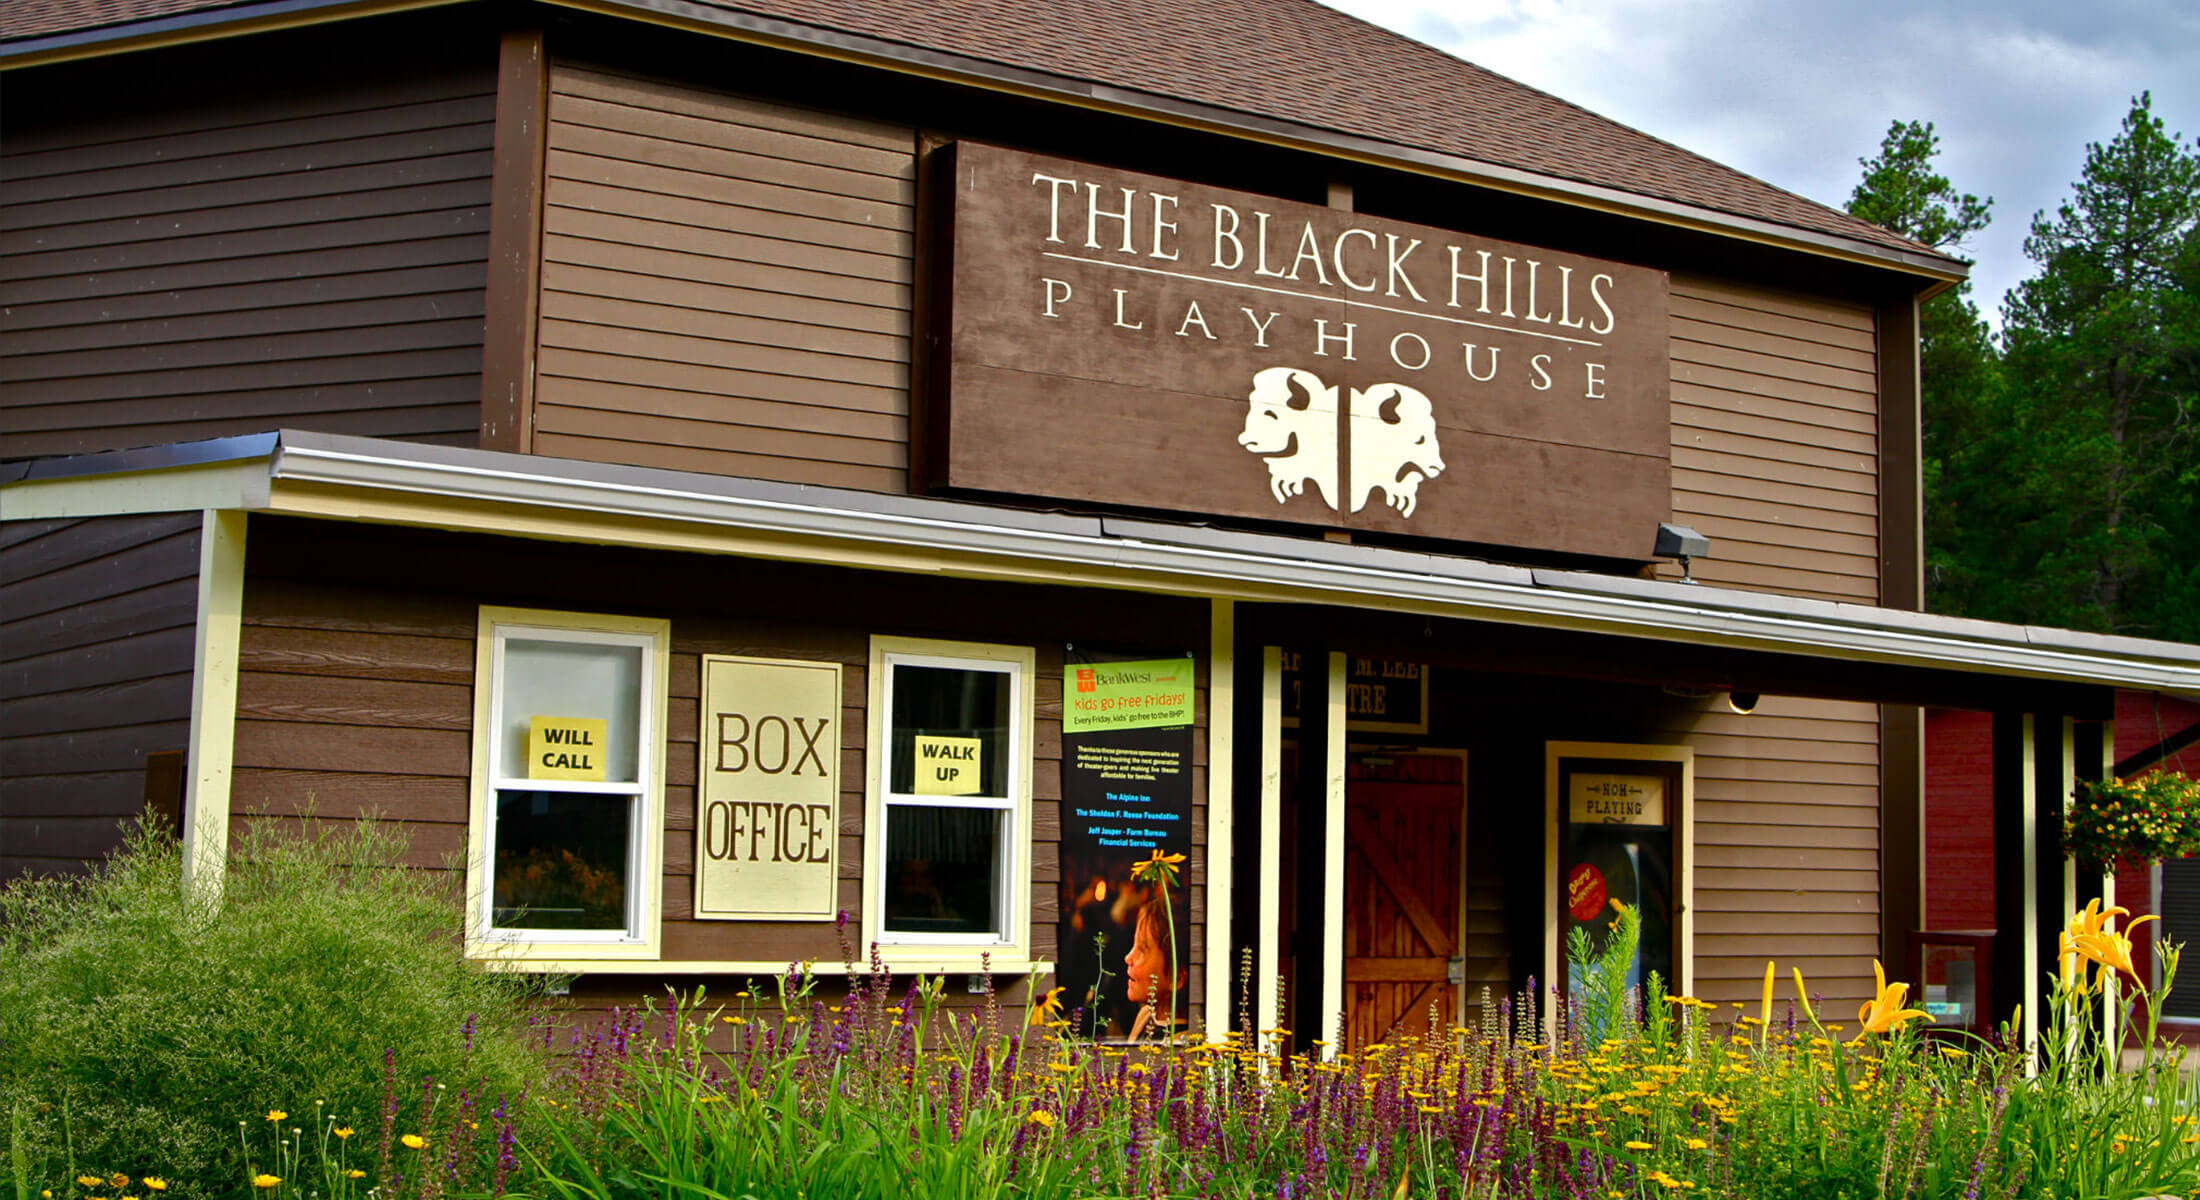 Exterior of the Black Hills Playhouse in Custer State Park